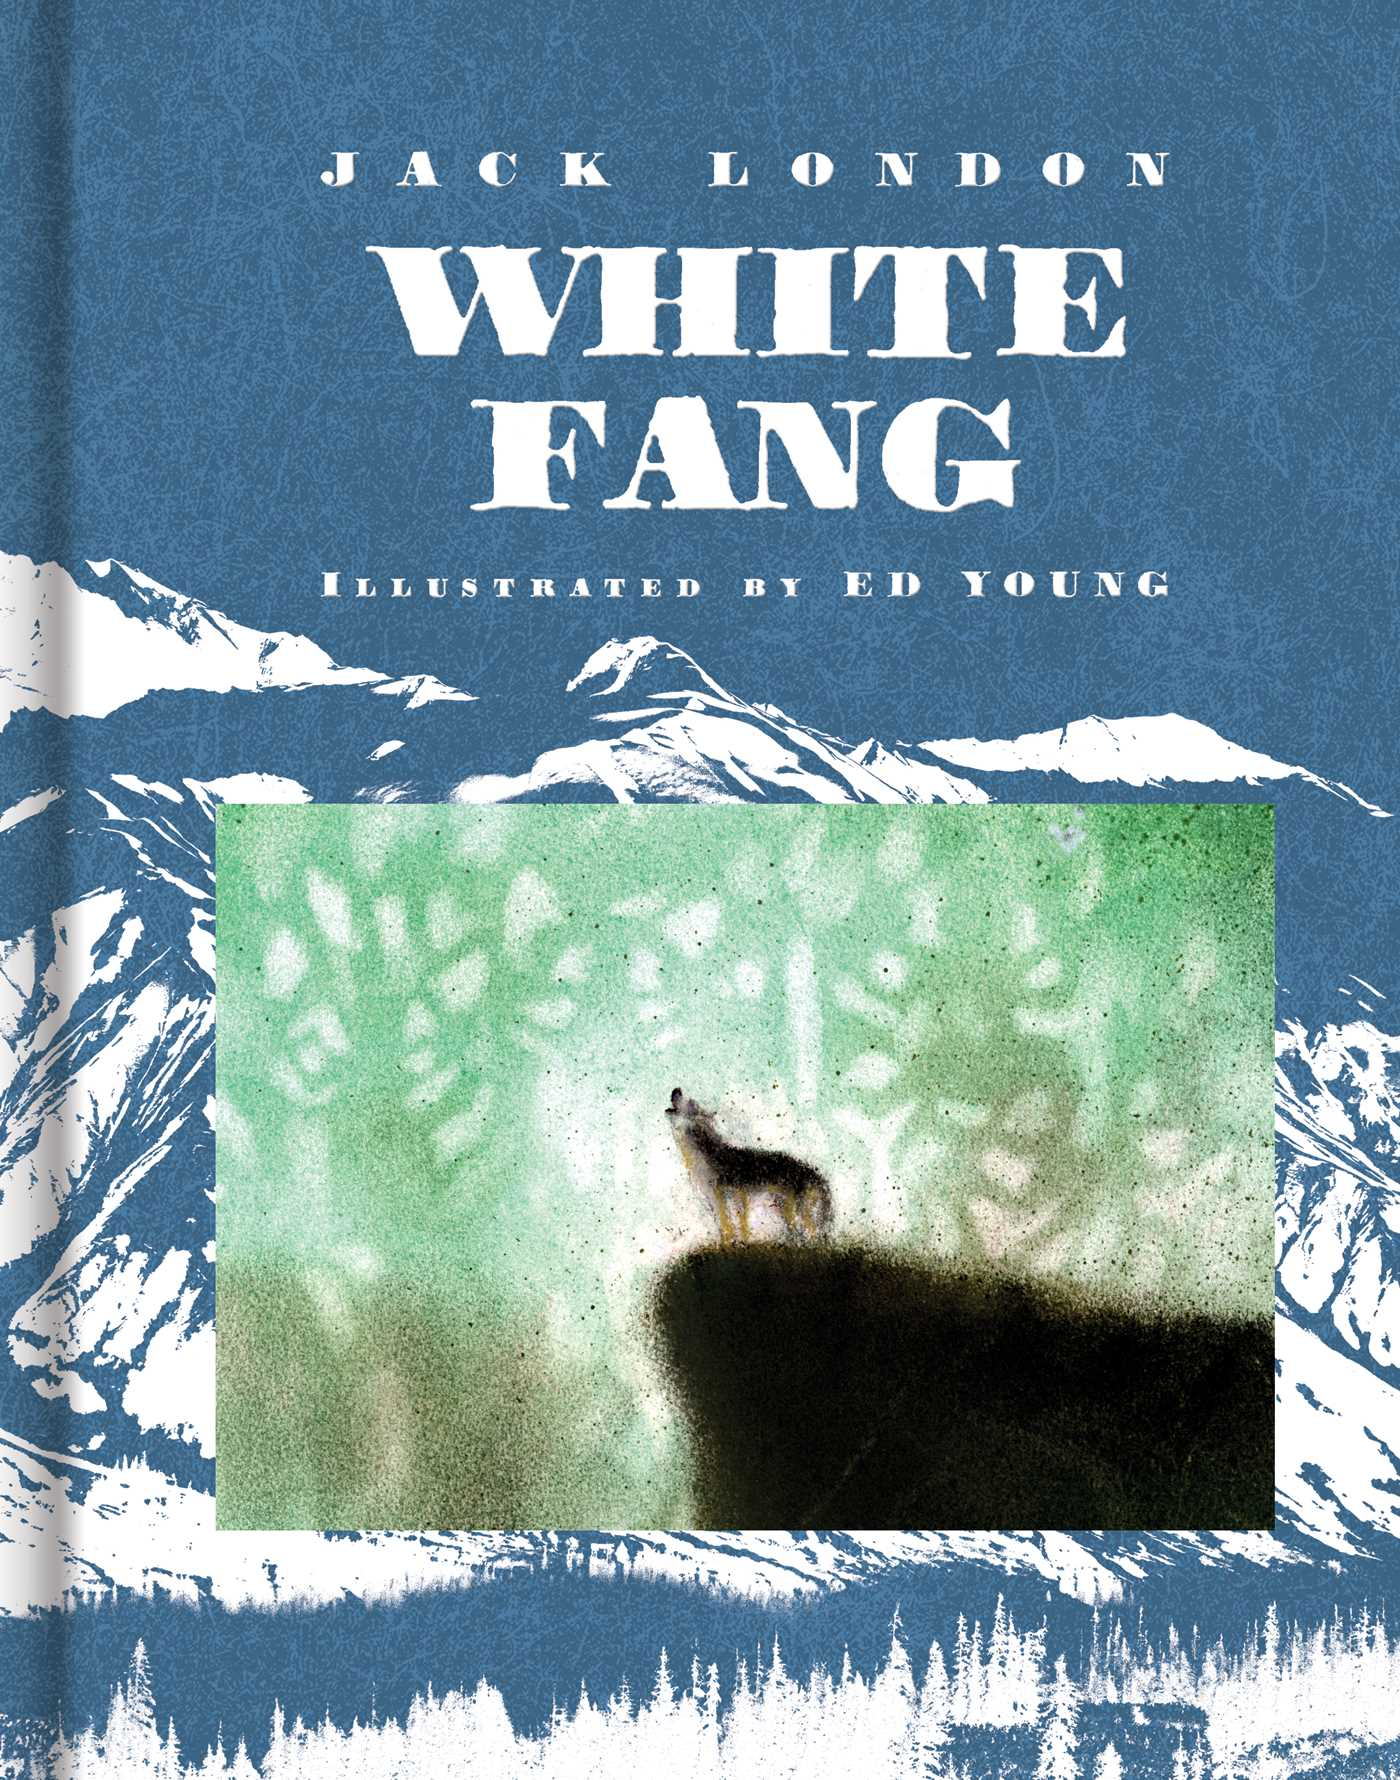 Worksheets White Fang 8th Grade white fang book by jack london ed young official publisher page 9781481444453 hr